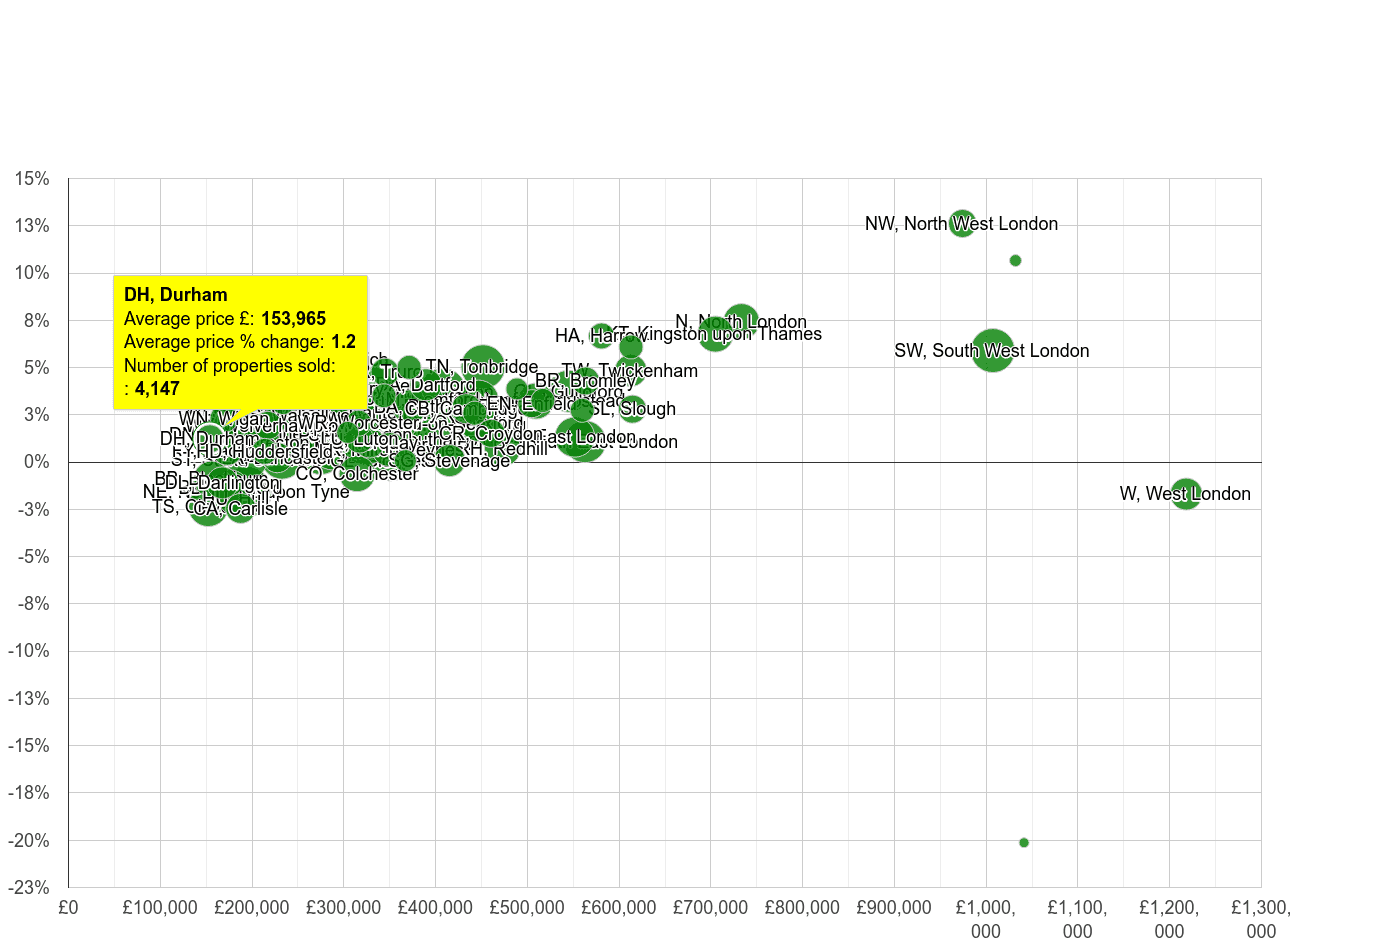 Durham house prices compared to other areas